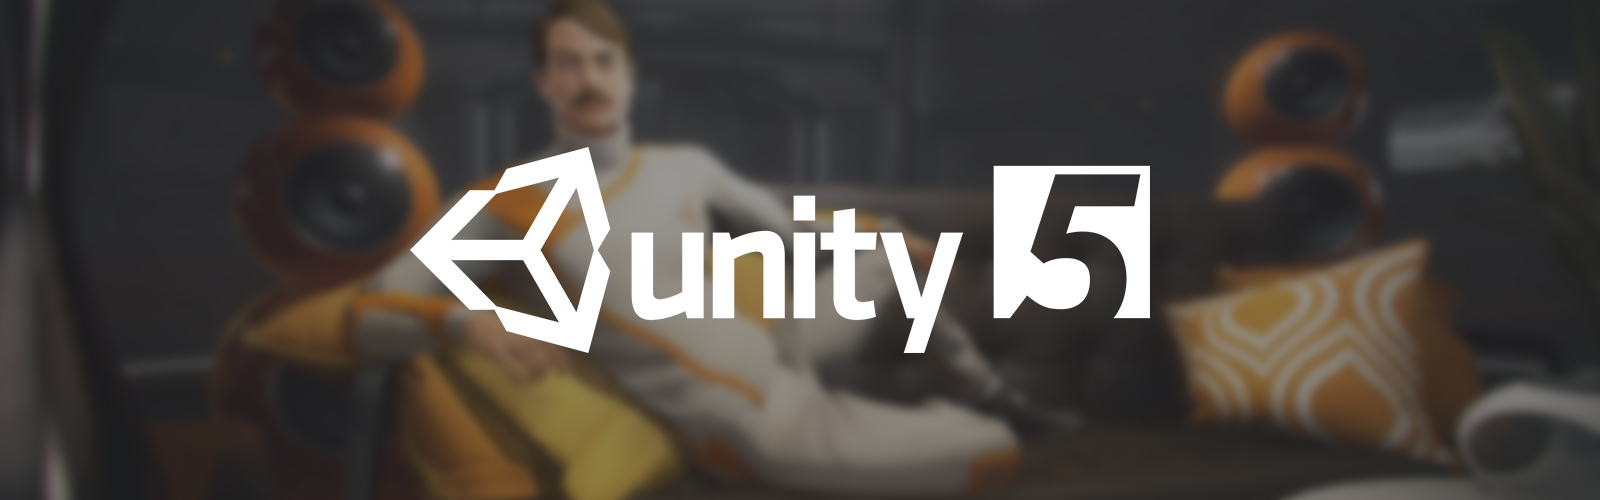 Discover the New Unity 5 Features | Pluralsight